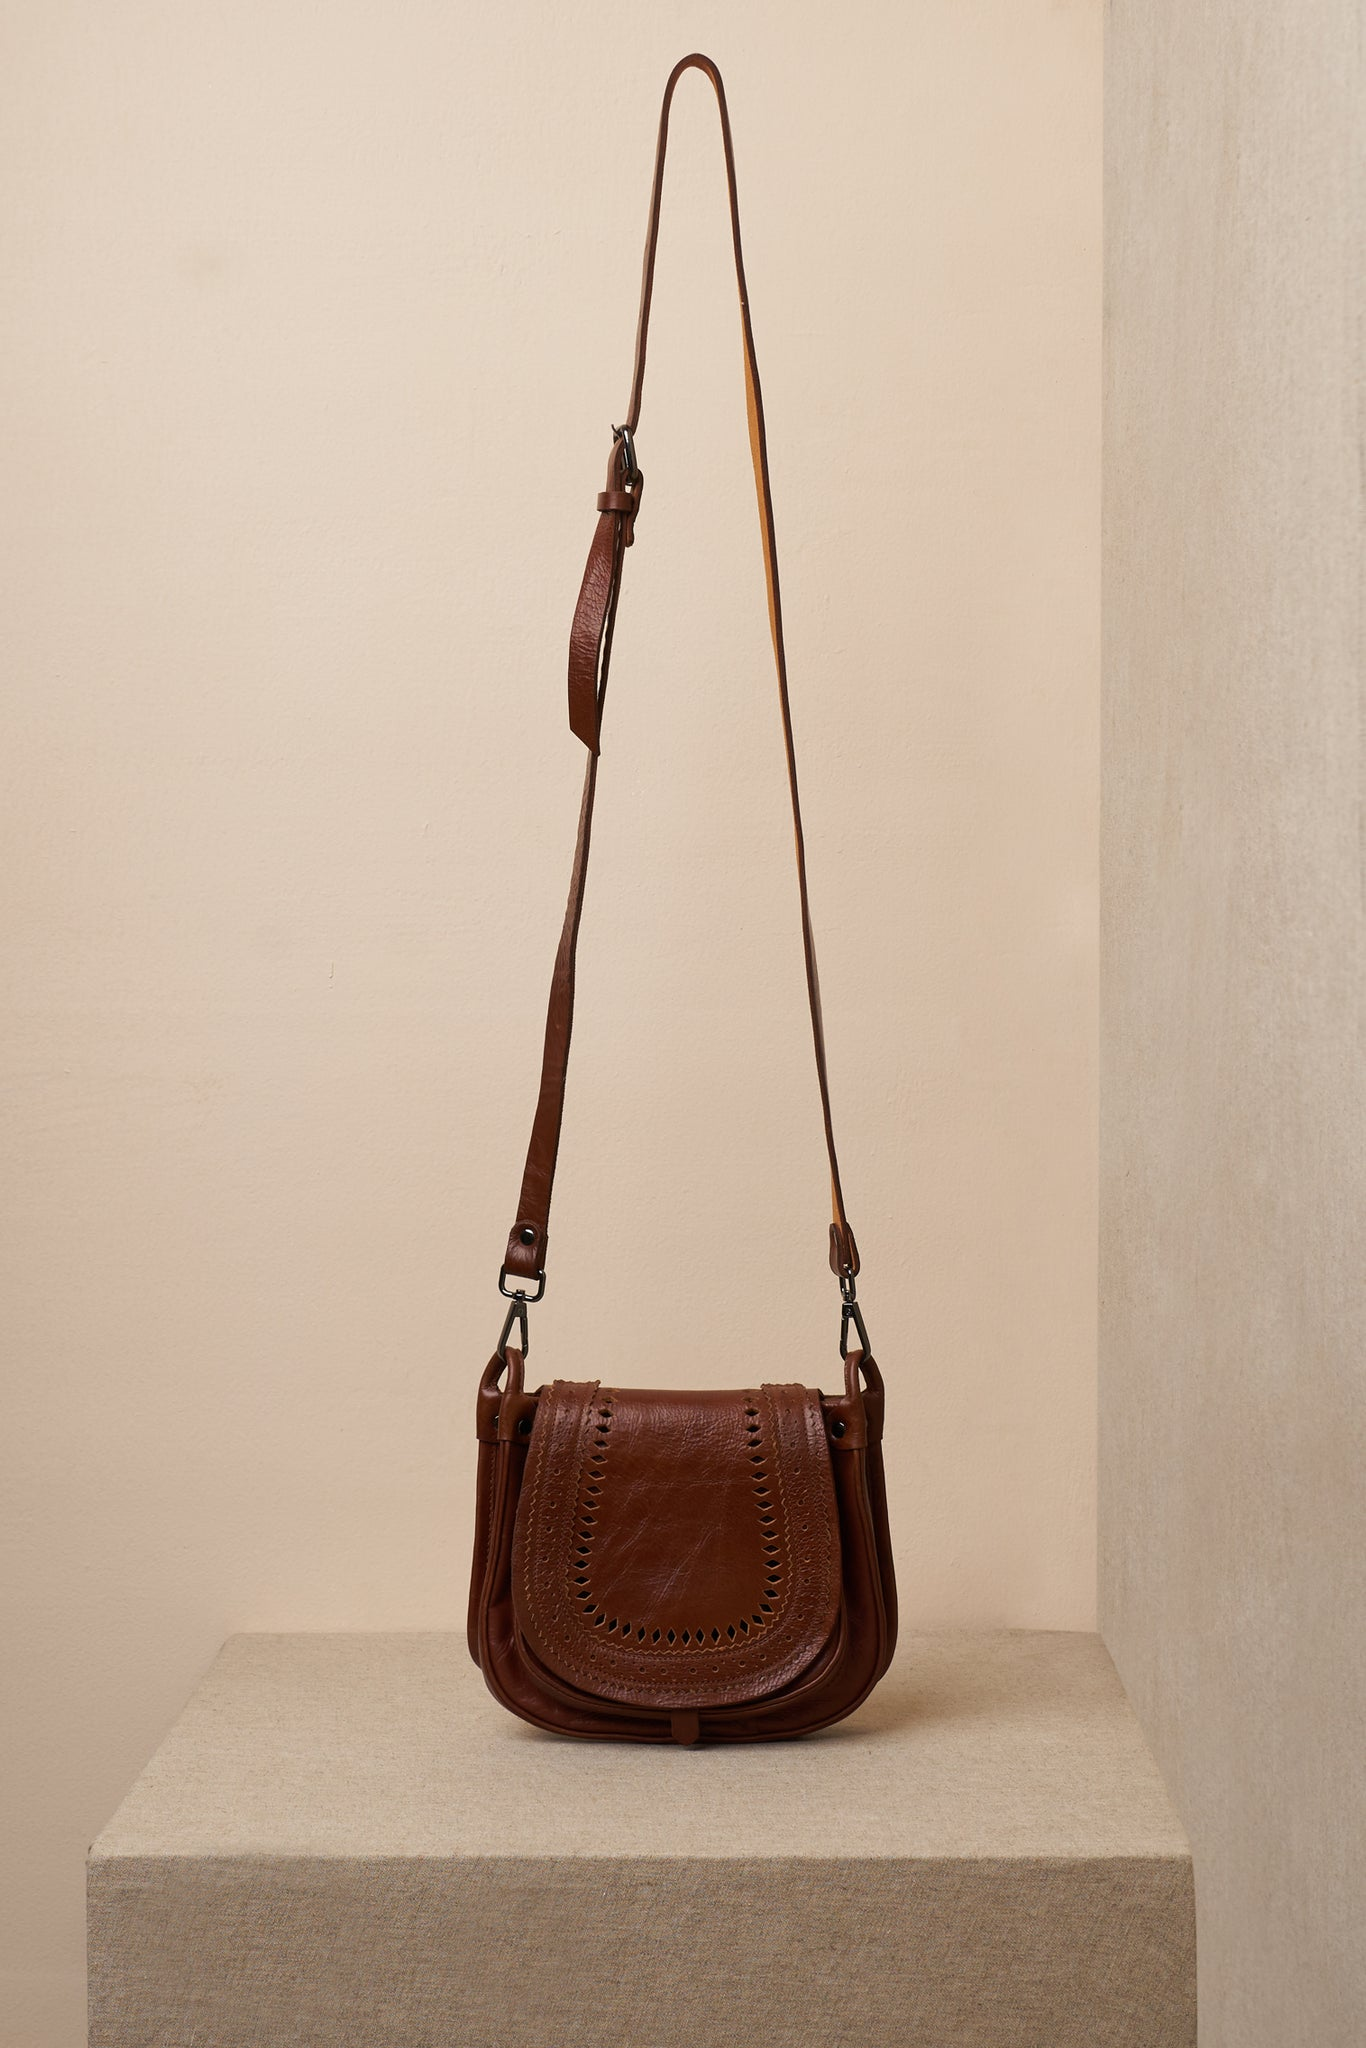 jade bag long strap